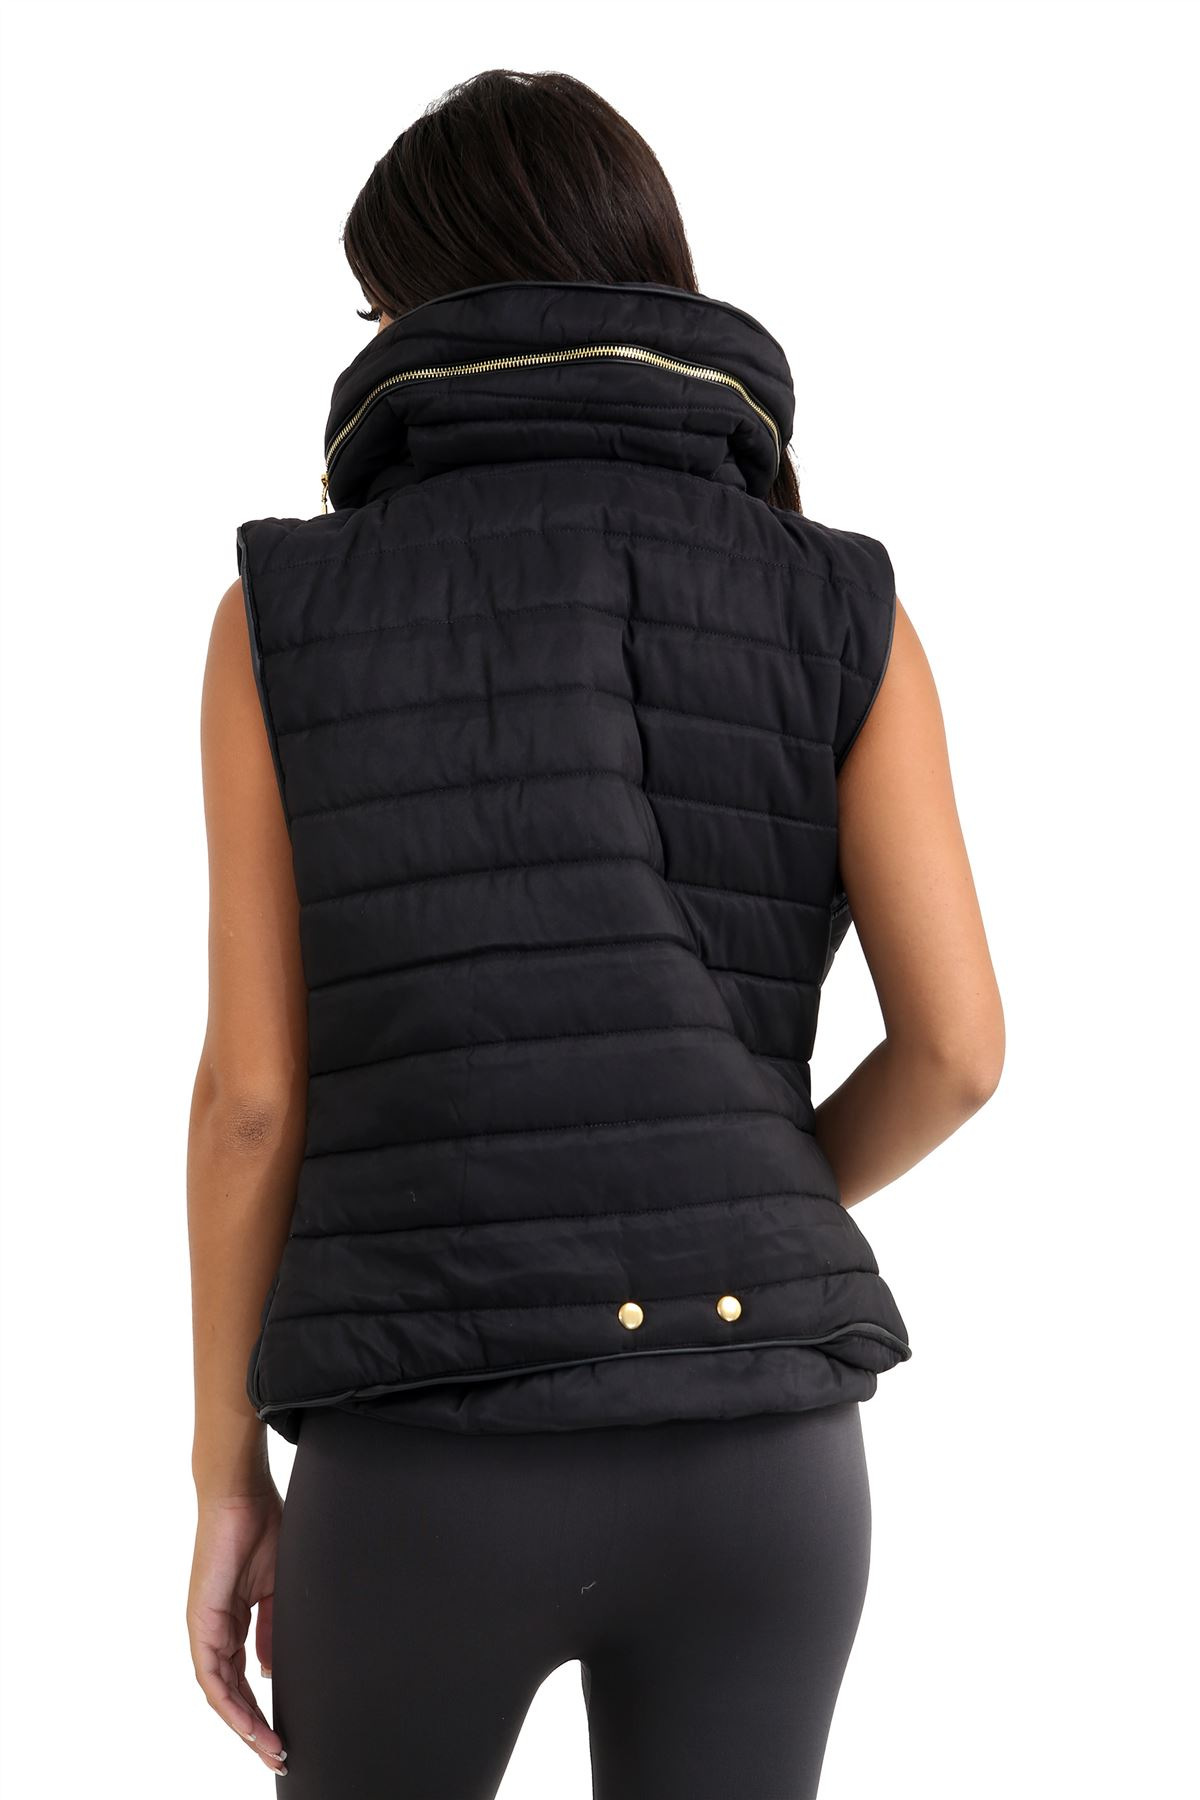 Ladies-Gilet-Quilted-Padded-Body-Warmer-Sleeveless-Fur-Collar-Puffer-Jacket-Coat thumbnail 5